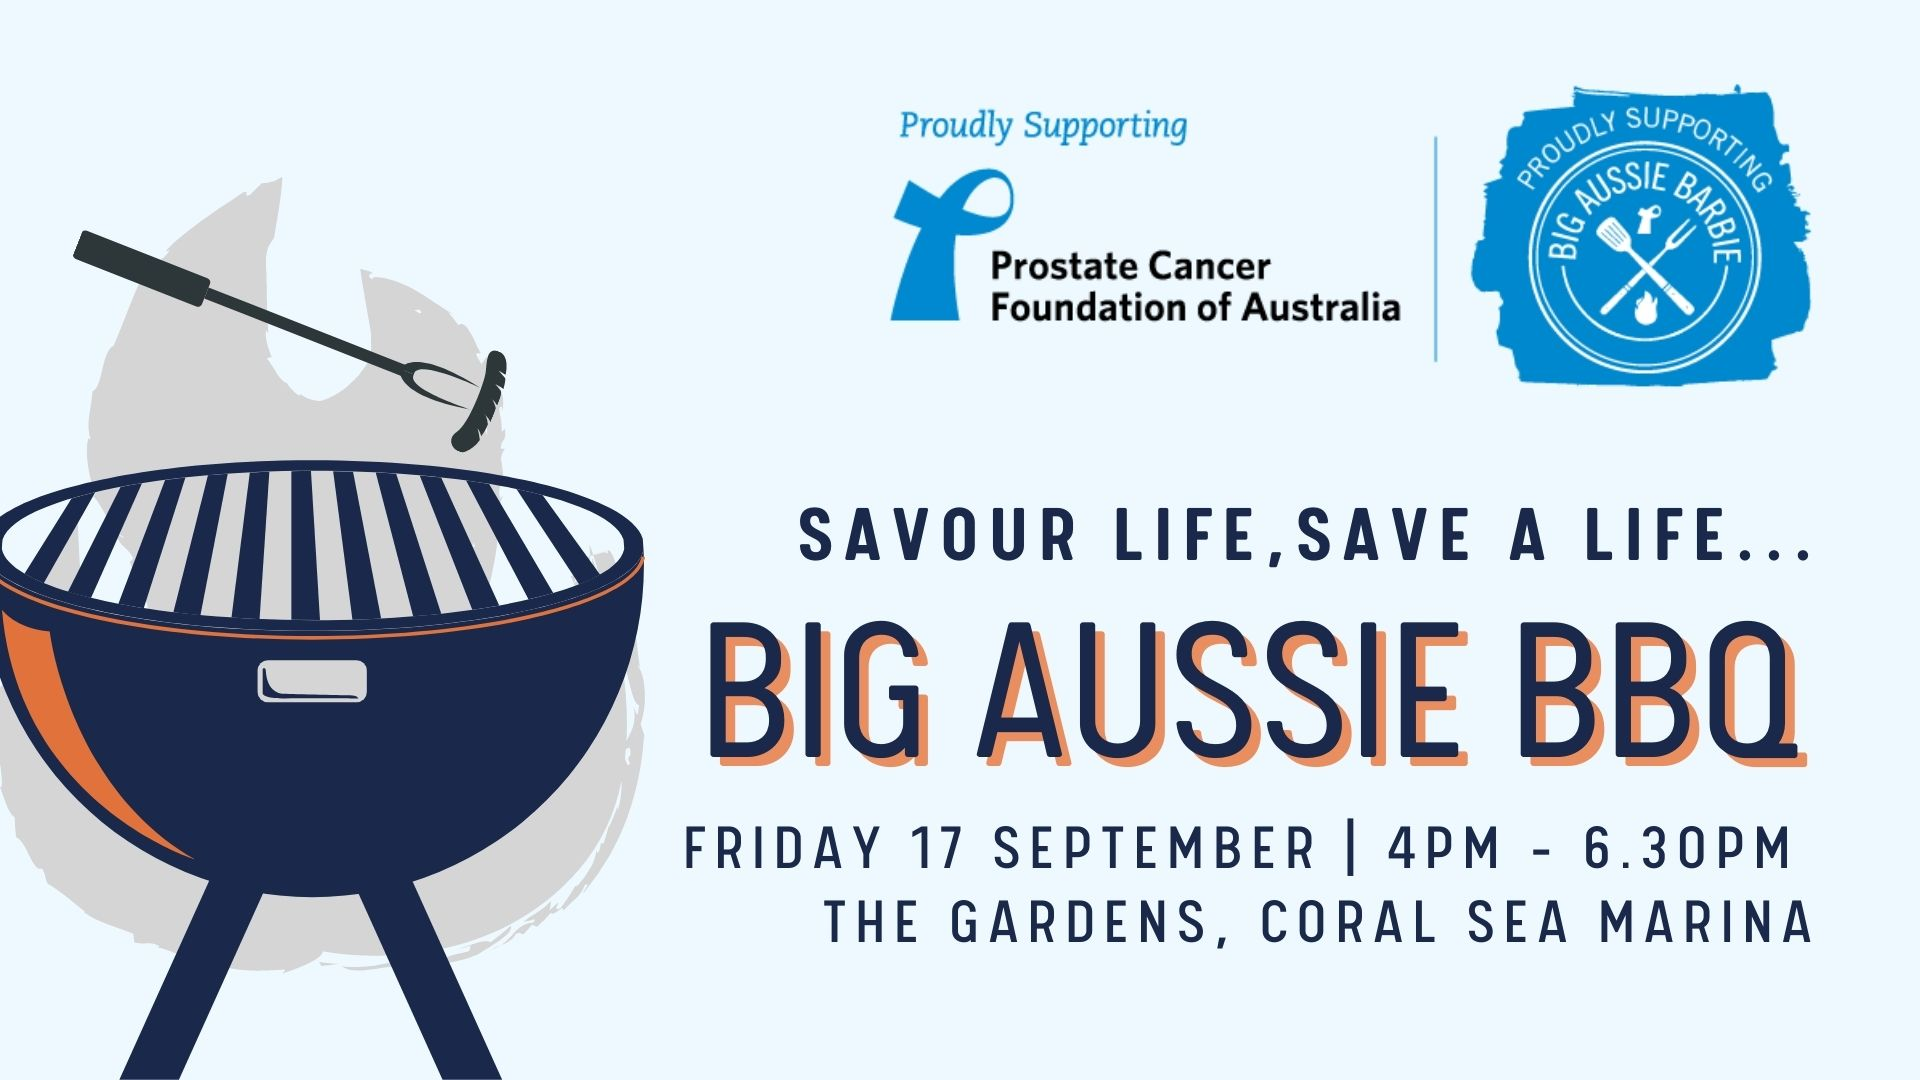 Promotional poster for CSMR Big Aussie BBQ